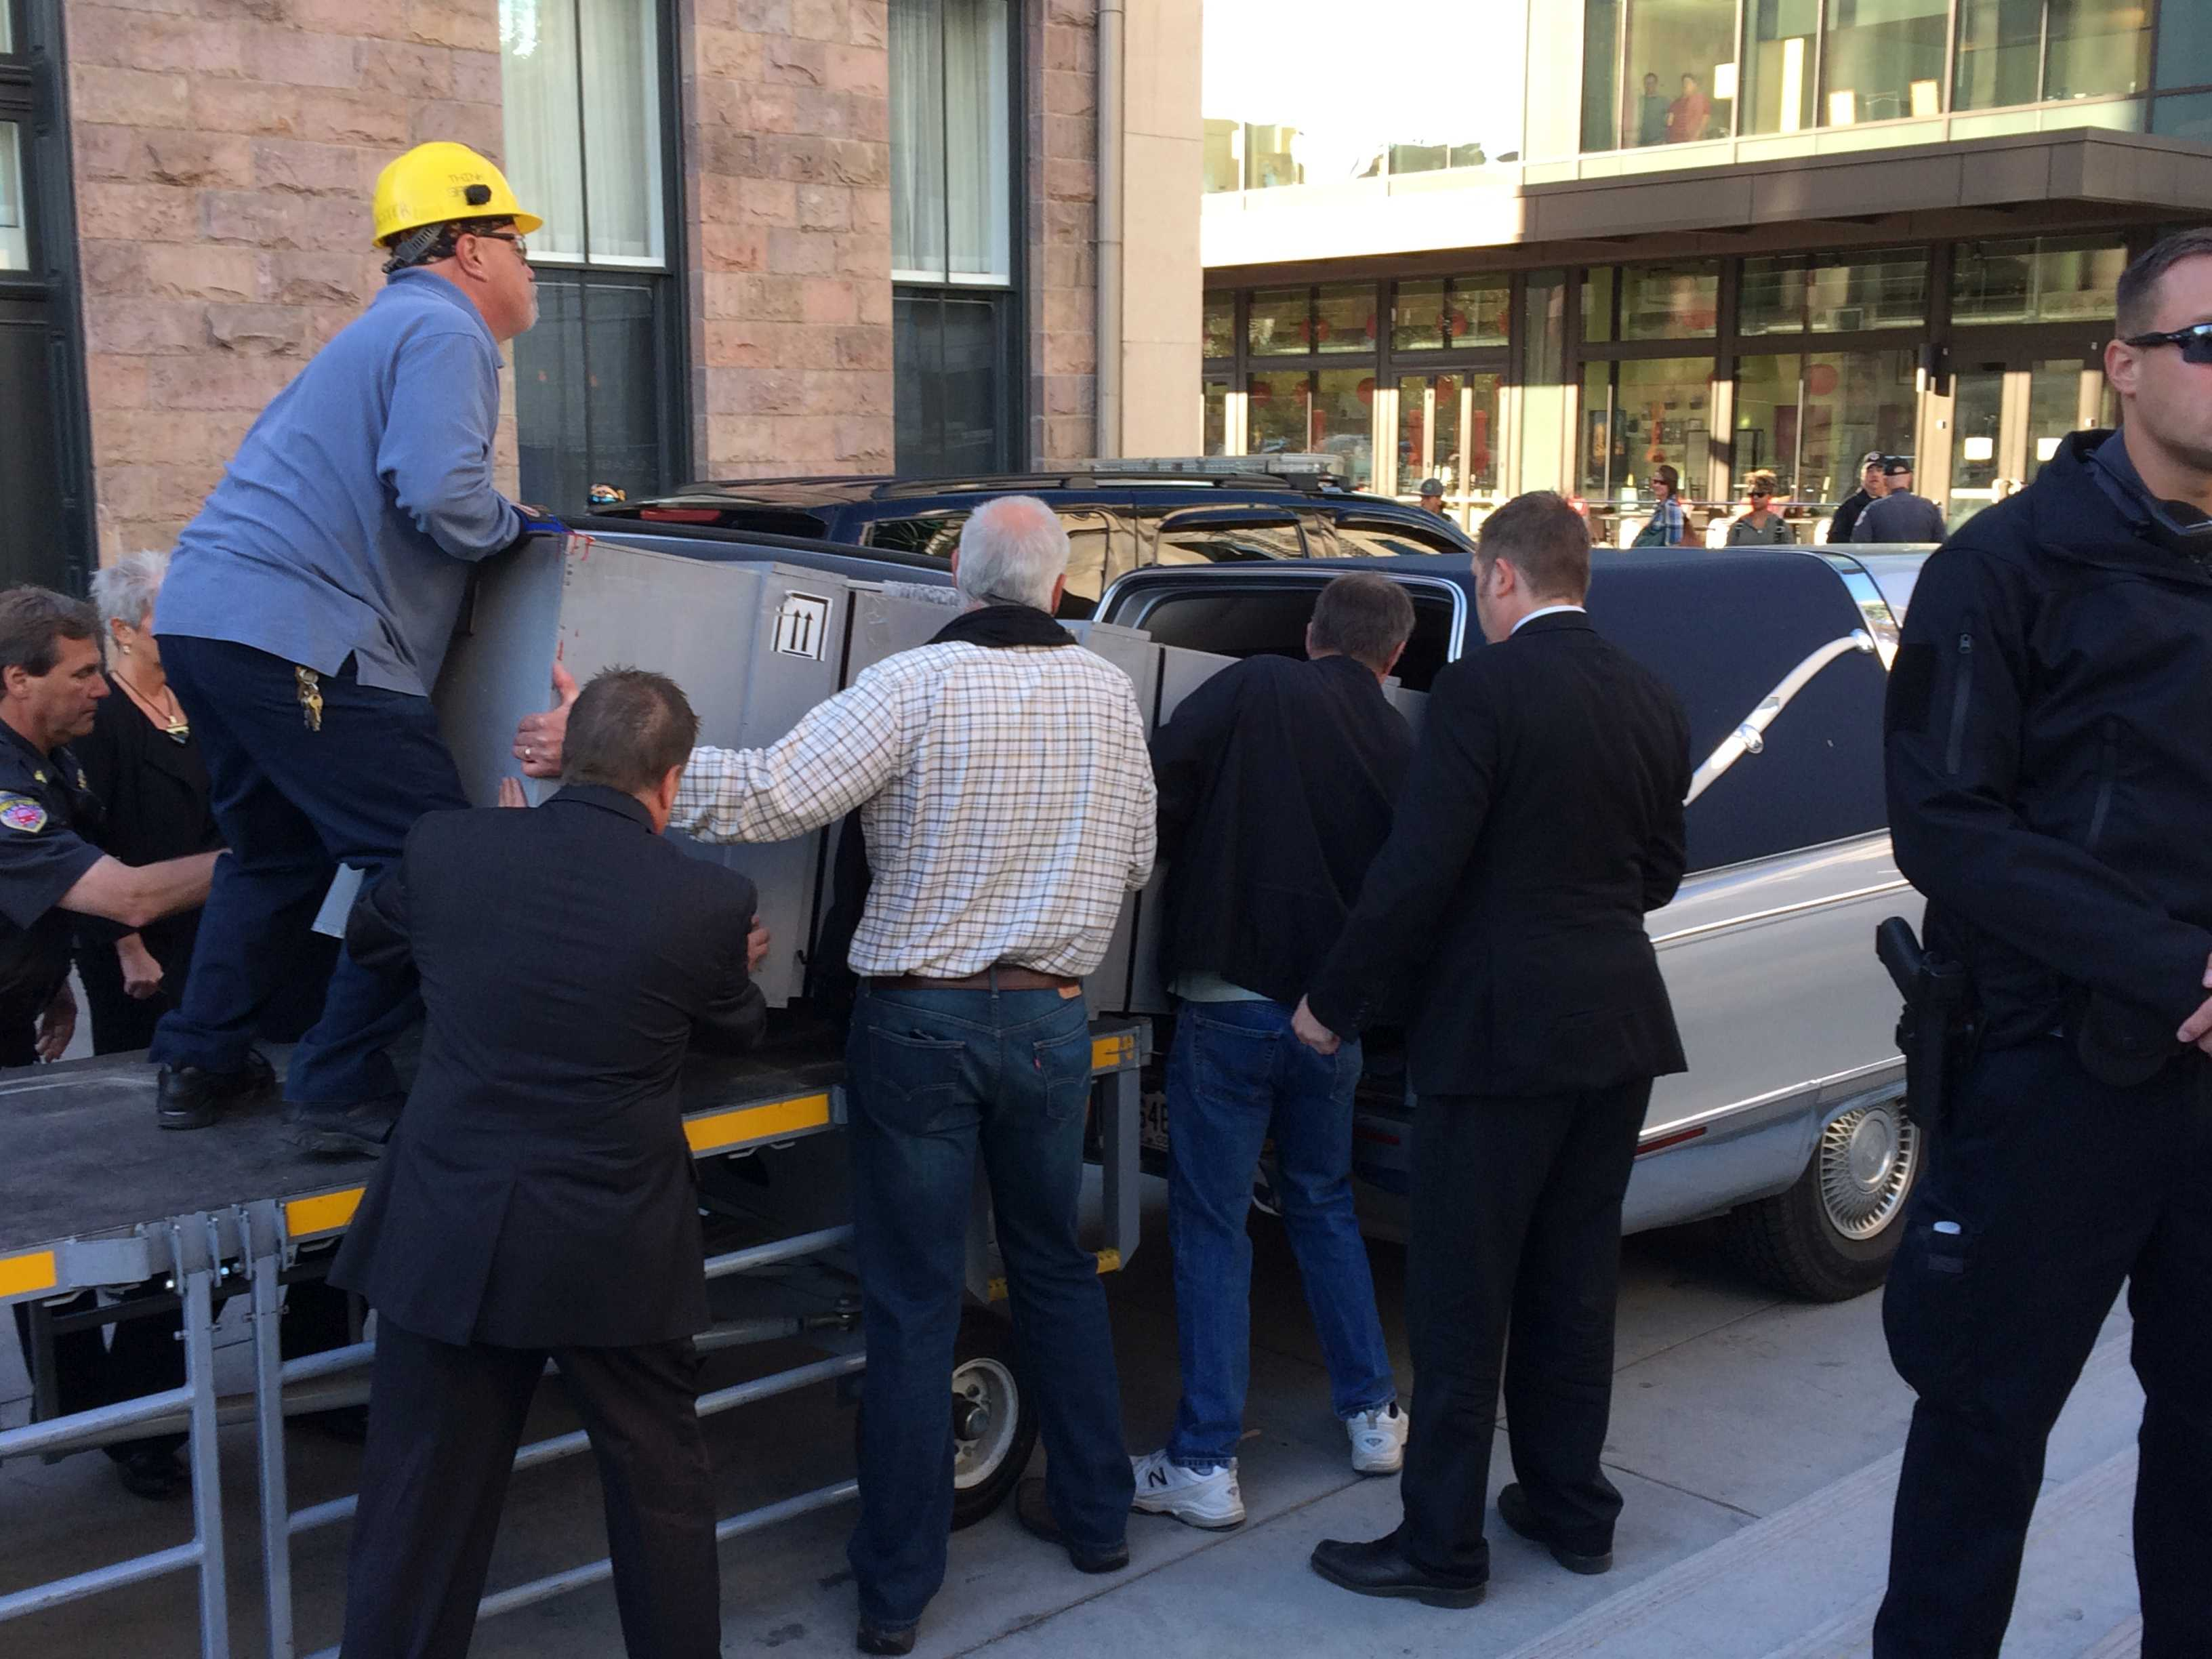 <p>The casket of Jordan MacTaggart is loaded into a hearse after arriving to Union Station via train. MacTaggart was killed in Syria fighting ISIS.</p>